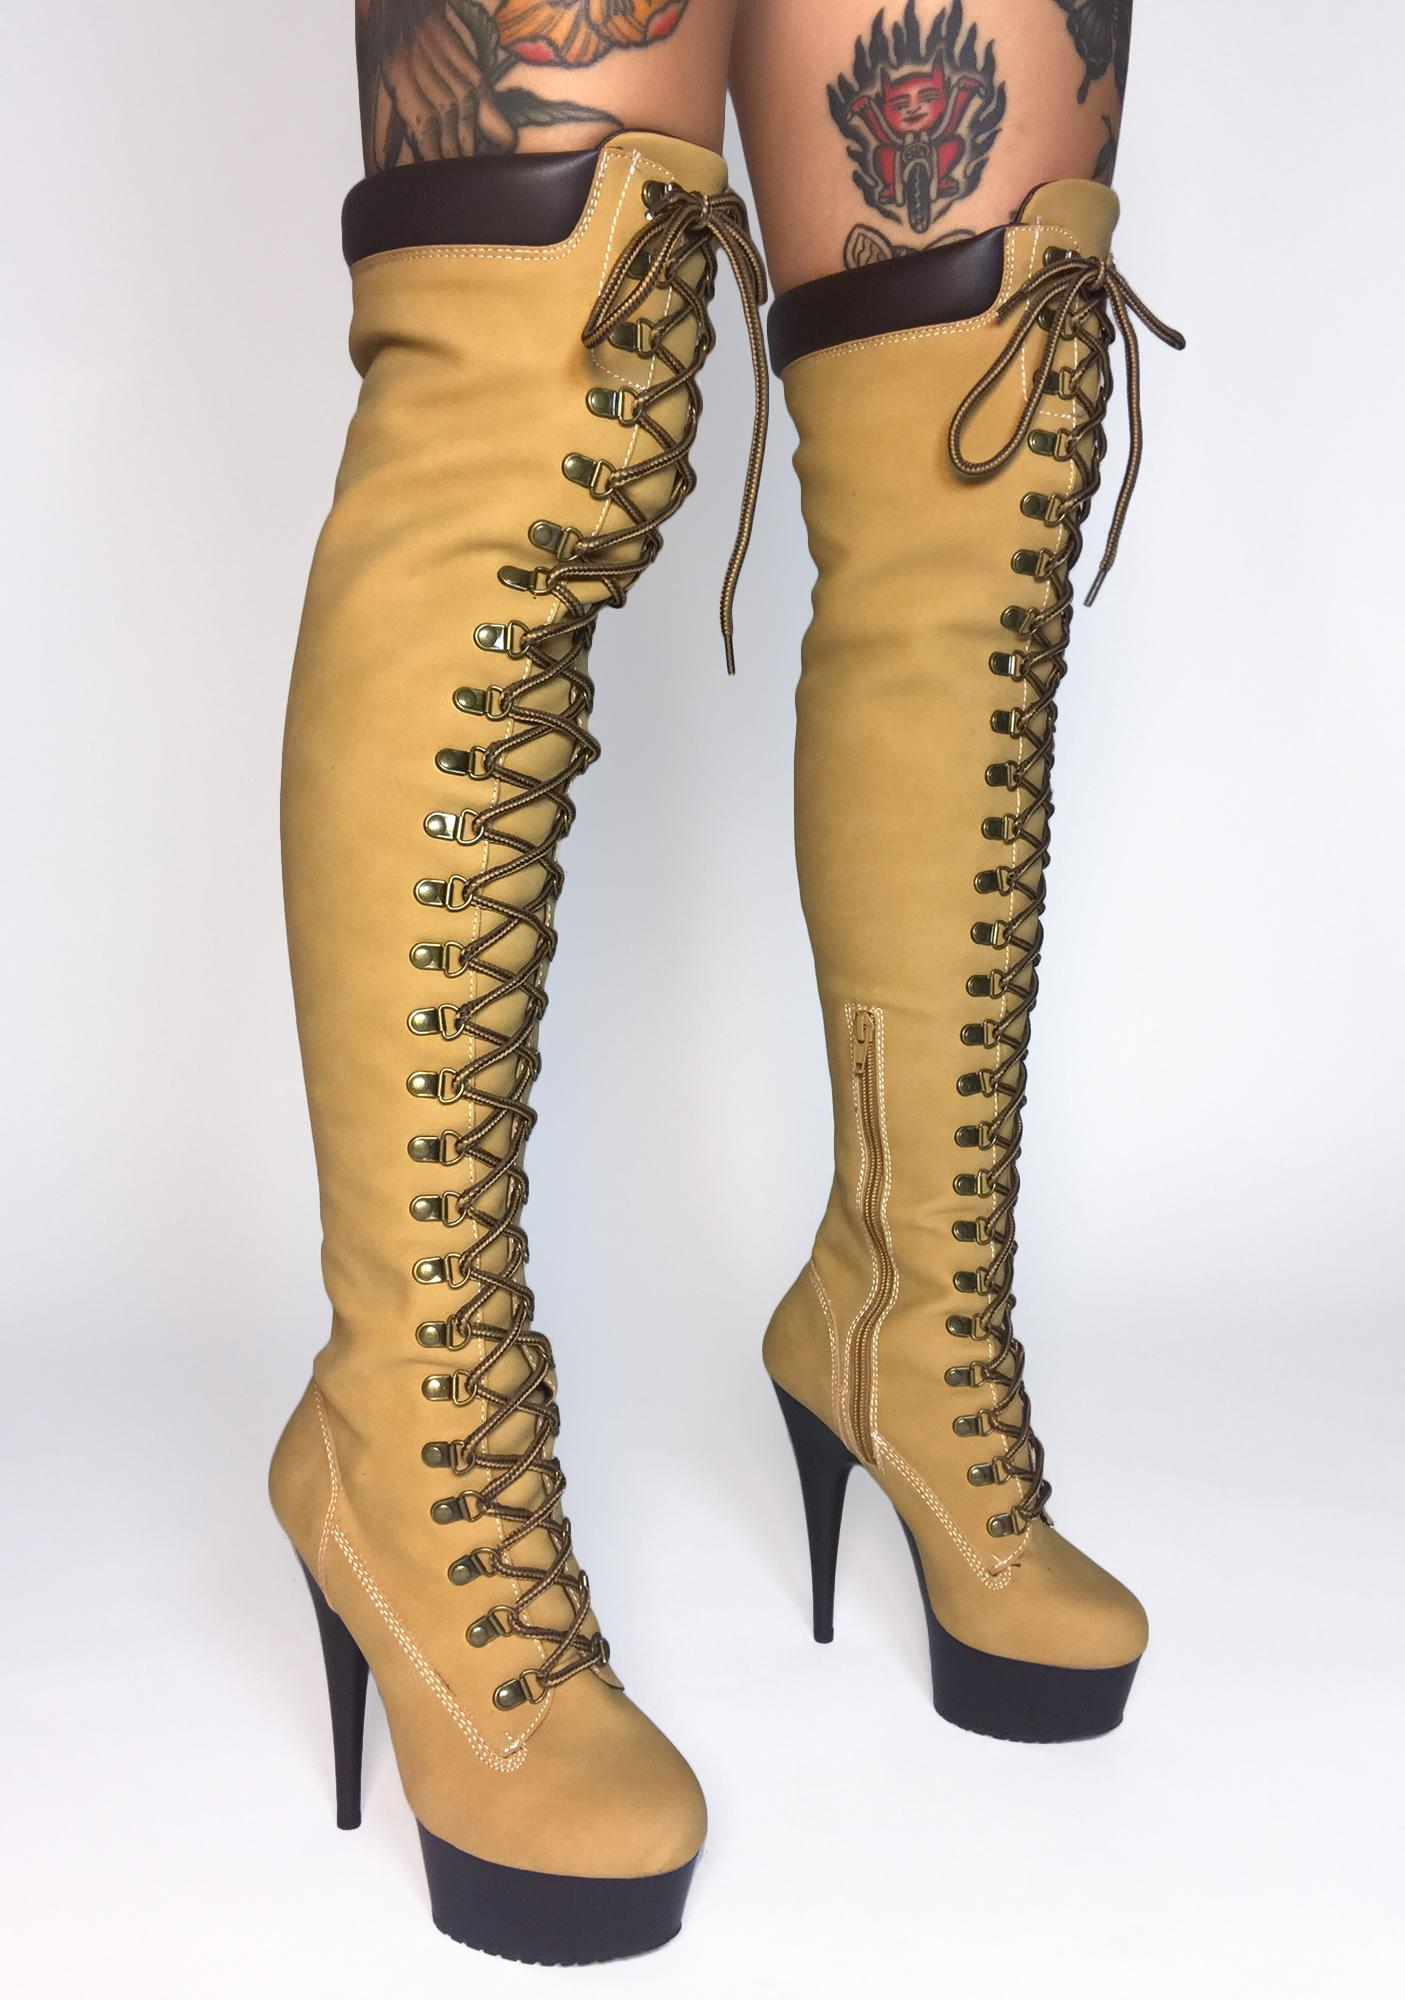 Pleaser Earnin' It Knee High Stiletto Boots